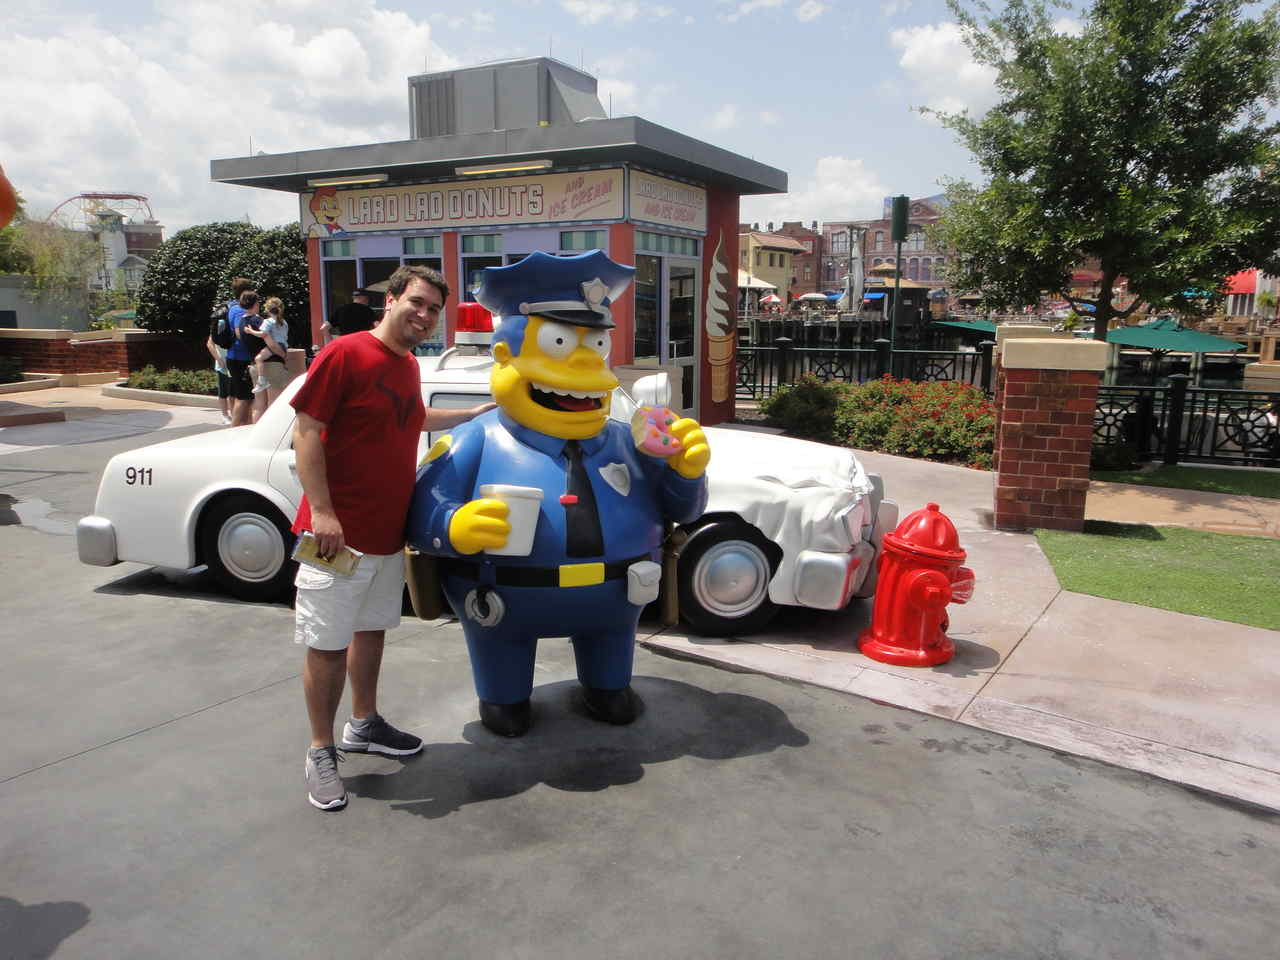 Turista tira foto com personagem dos Simpsons